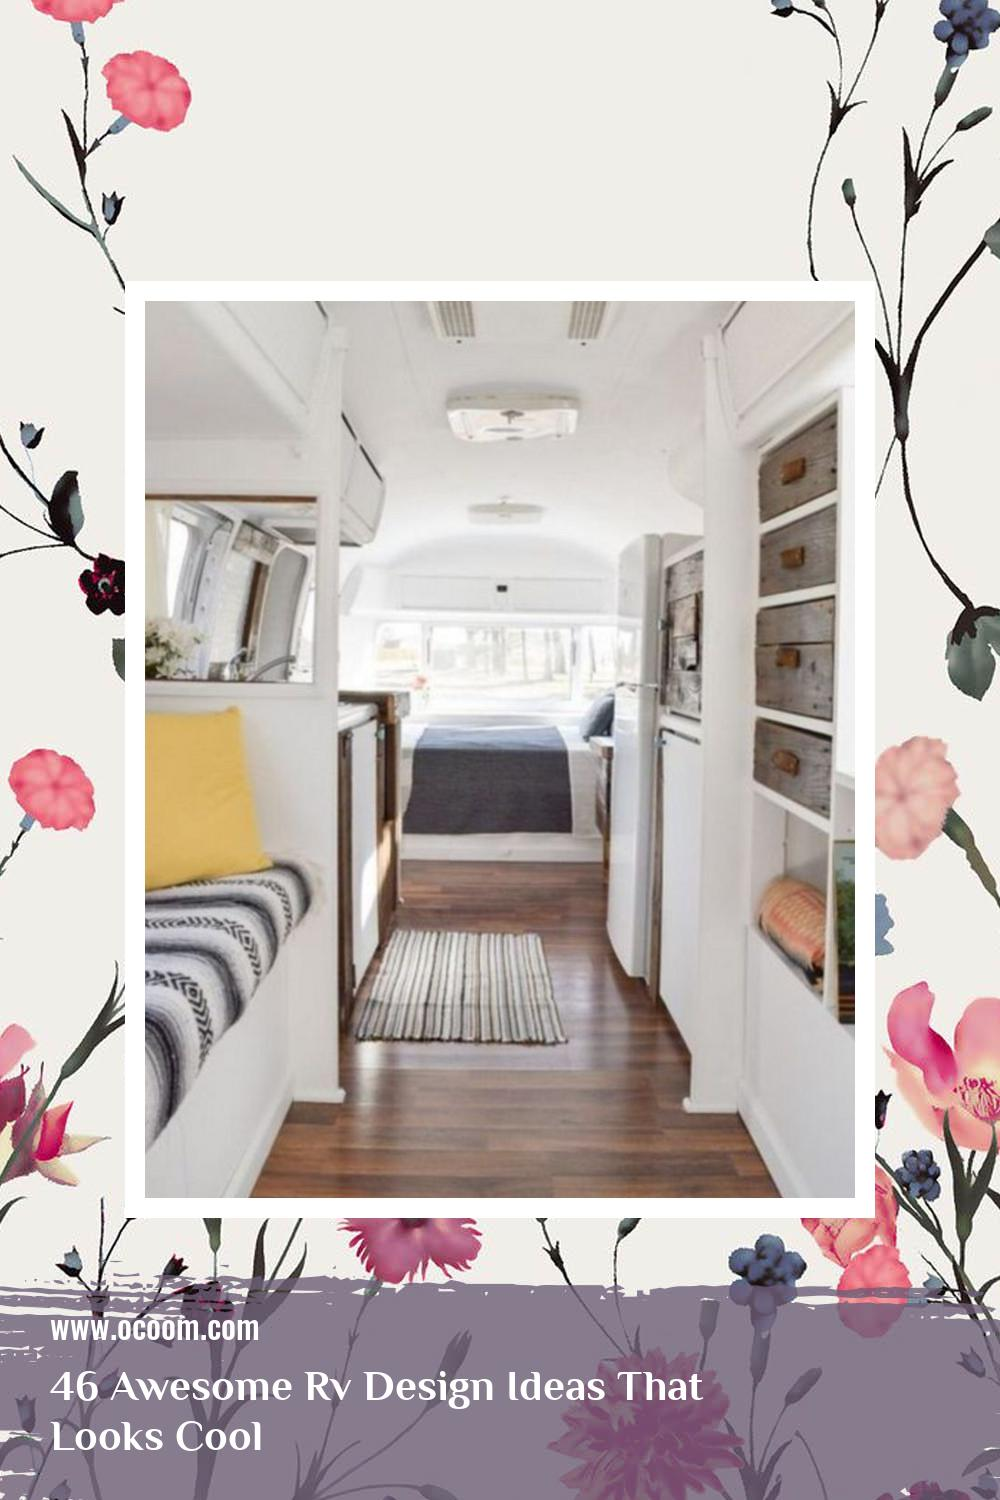 46 Awesome Rv Design Ideas That Looks Cool 39